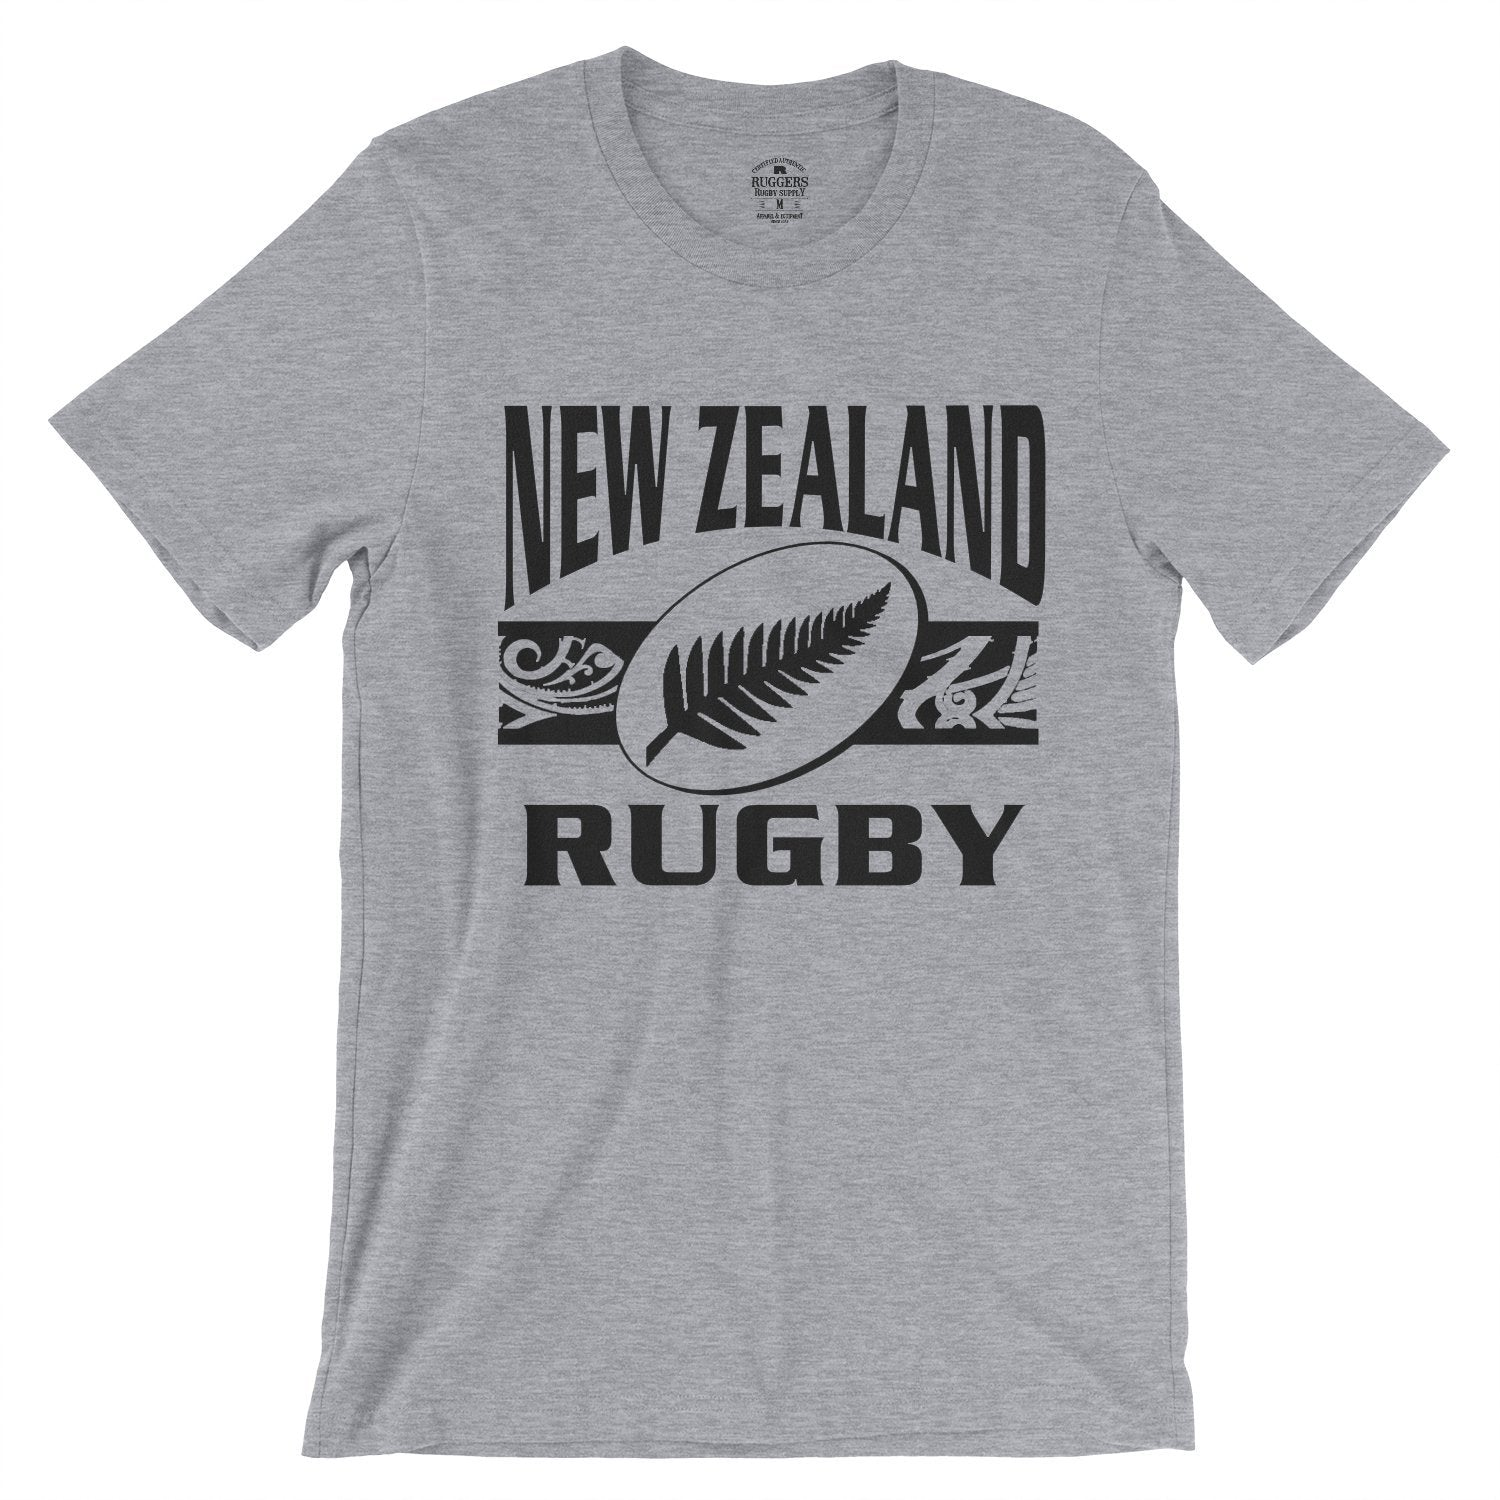 Graphic Tees - New Zealand Rugby S/S Tee